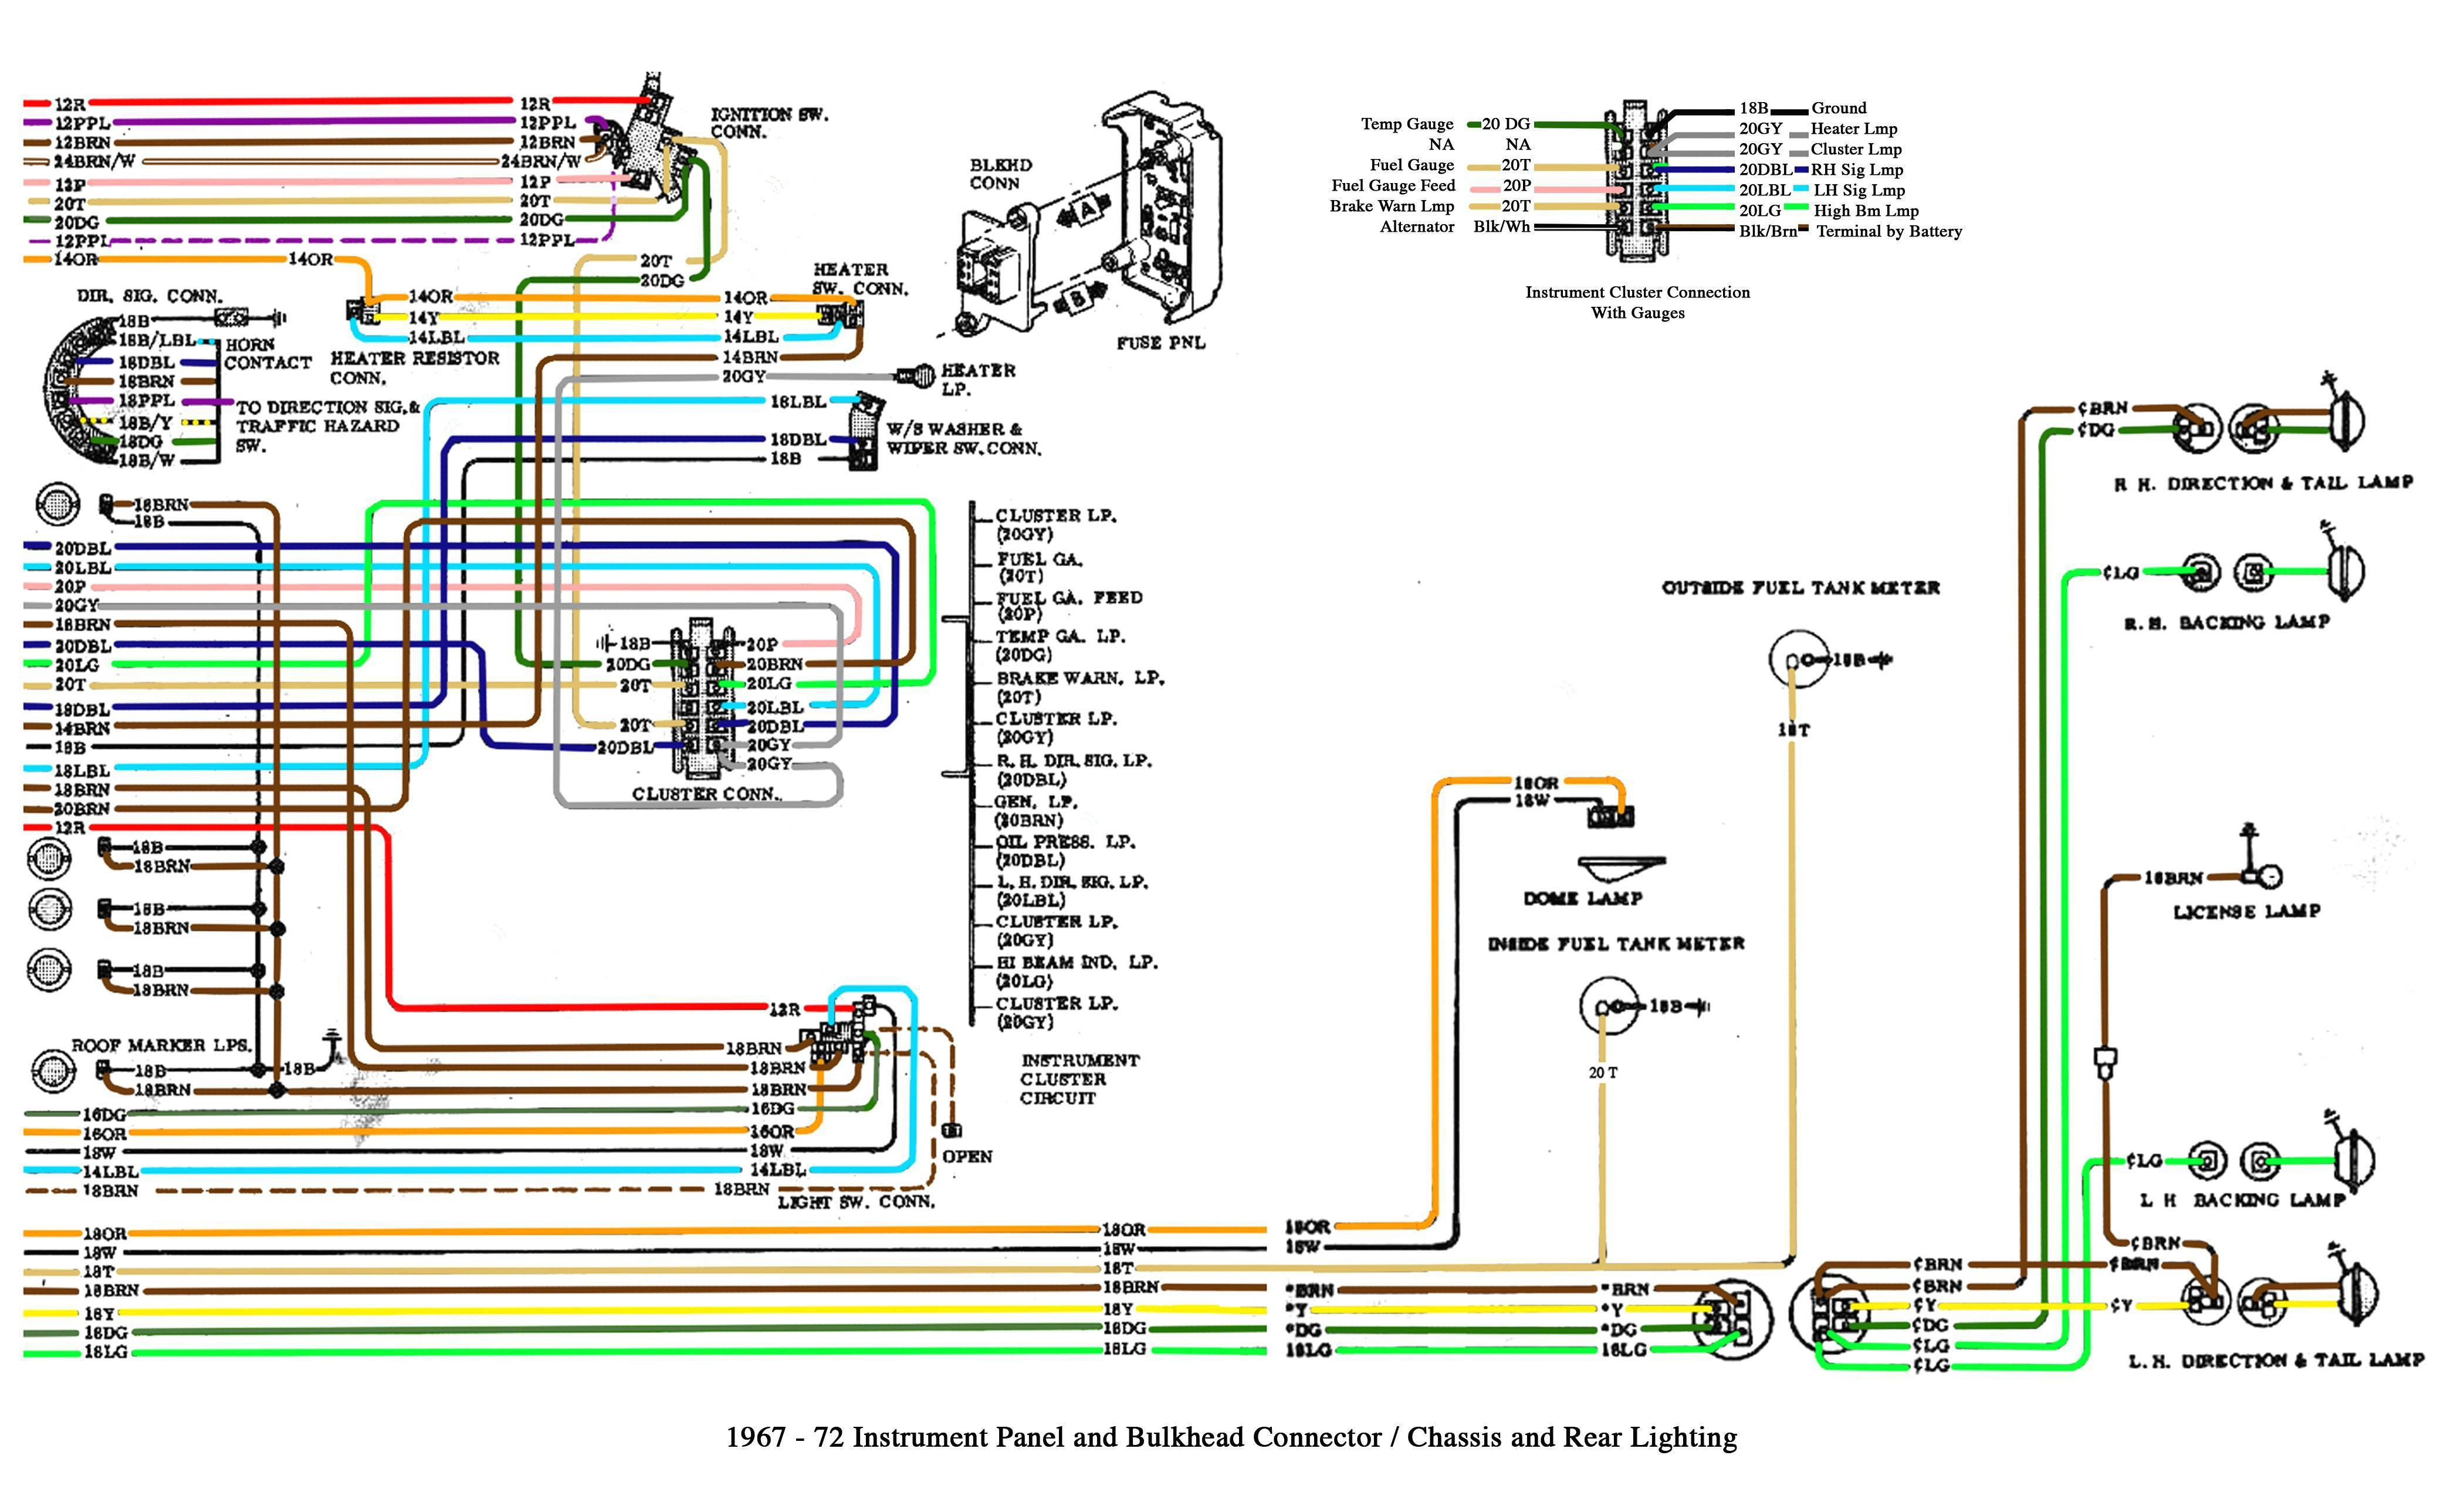 2004 impala radio wiring diagram wire schematic for 2008 impala wiring diagram data  wire schematic for 2008 impala wiring